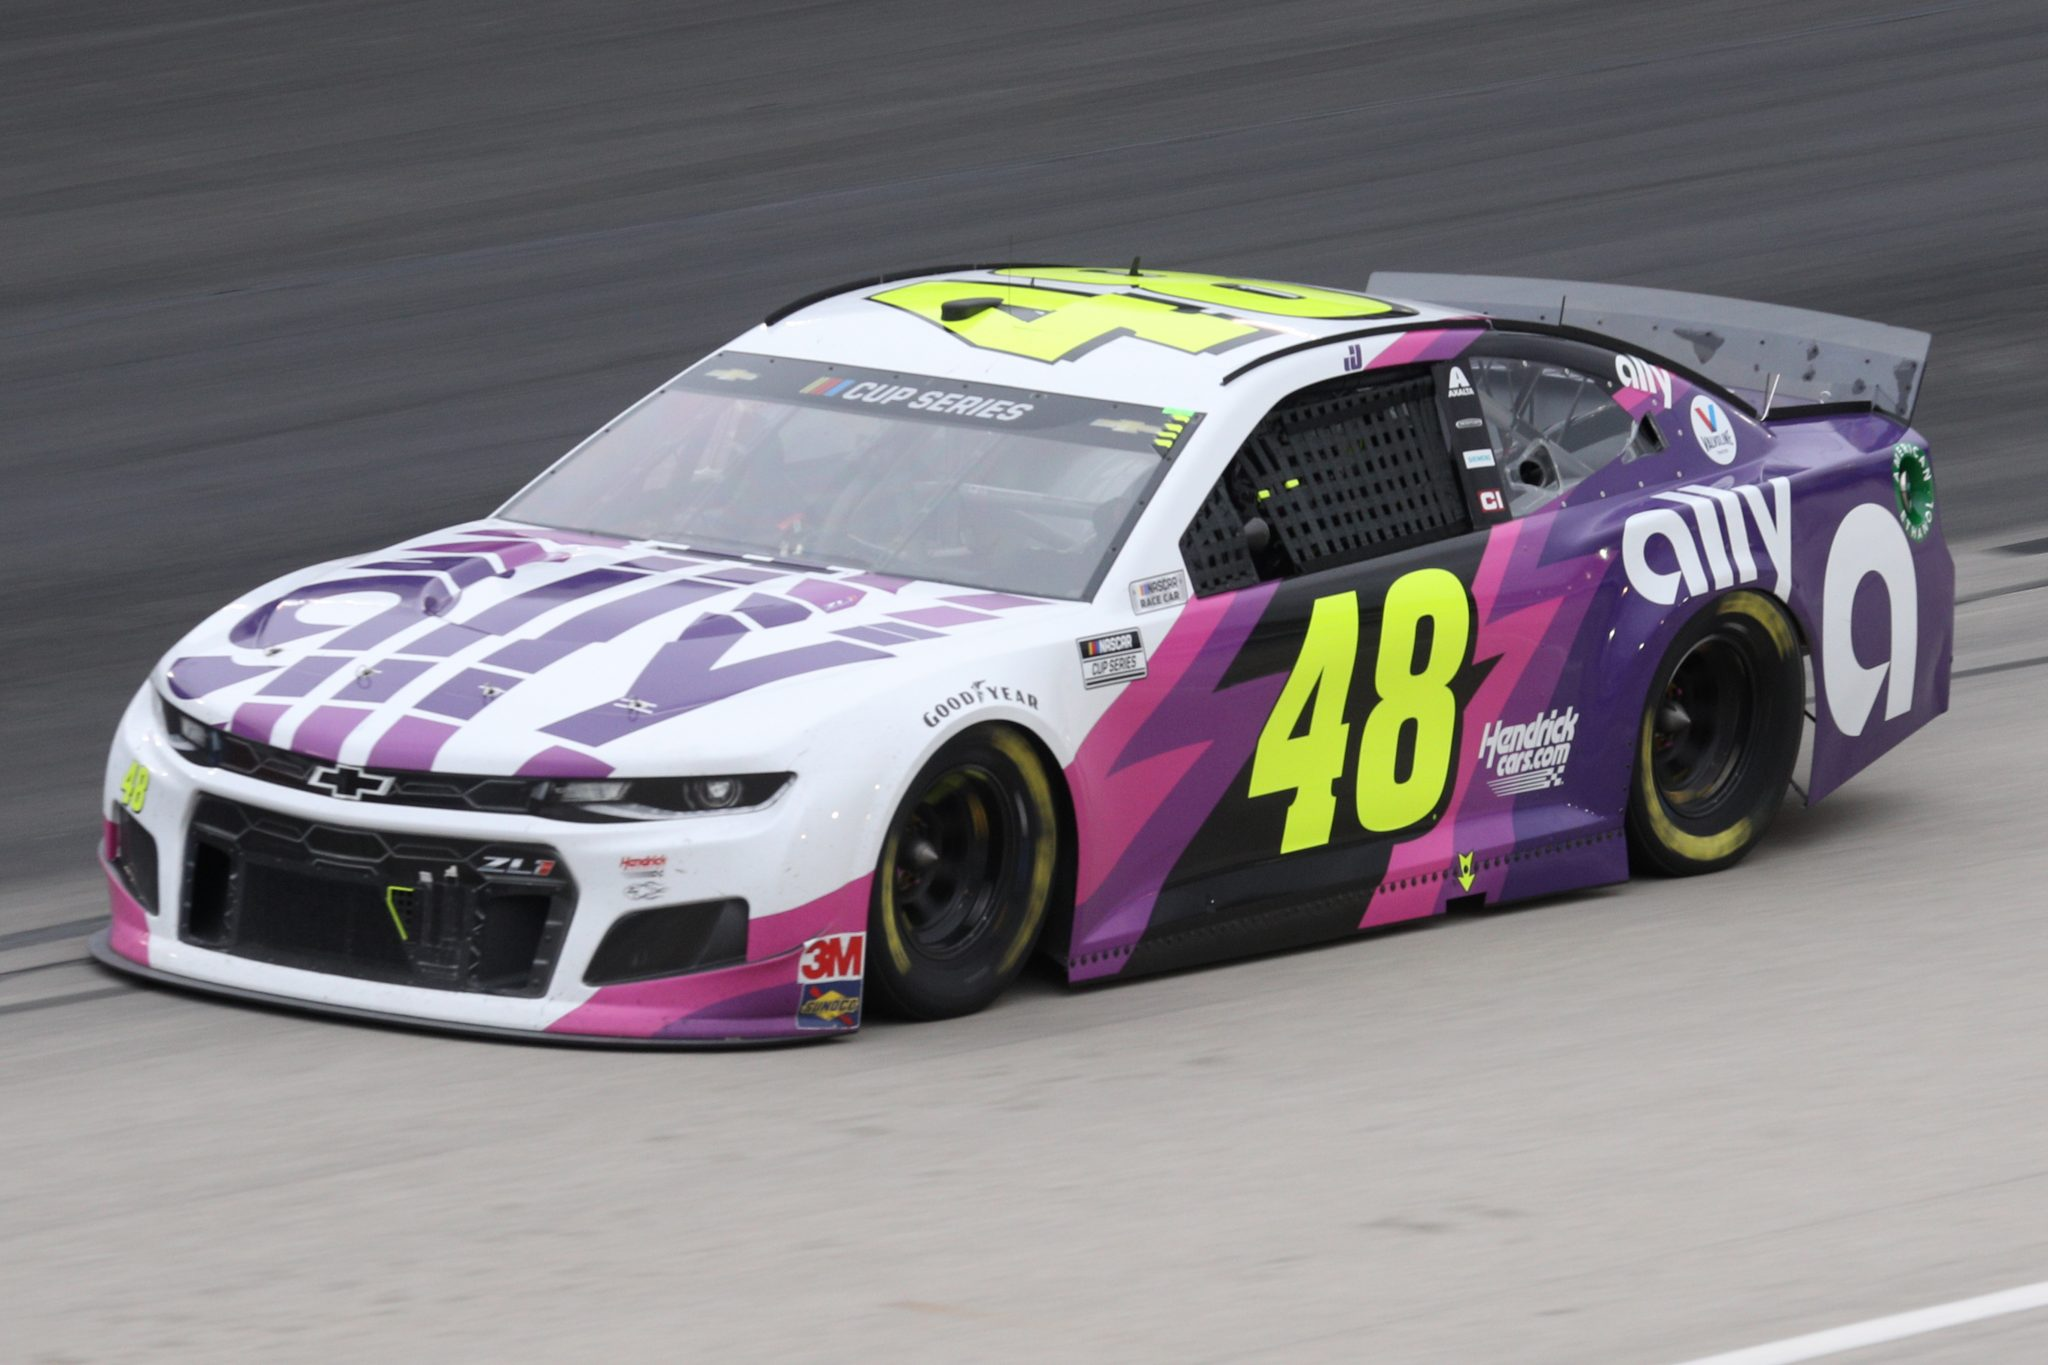 FORT WORTH, TEXAS - OCTOBER 28: Jimmie Johnson, driver of the #48 Ally designed by Noah Sweet Chevrolet, drives during the NASCAR Cup Series Autotrader EchoPark Automotive 500 at Texas Motor Speedway on October 28, 2020 in Fort Worth, Texas. (Photo by Chris Graythen/Getty Images) | Getty Images